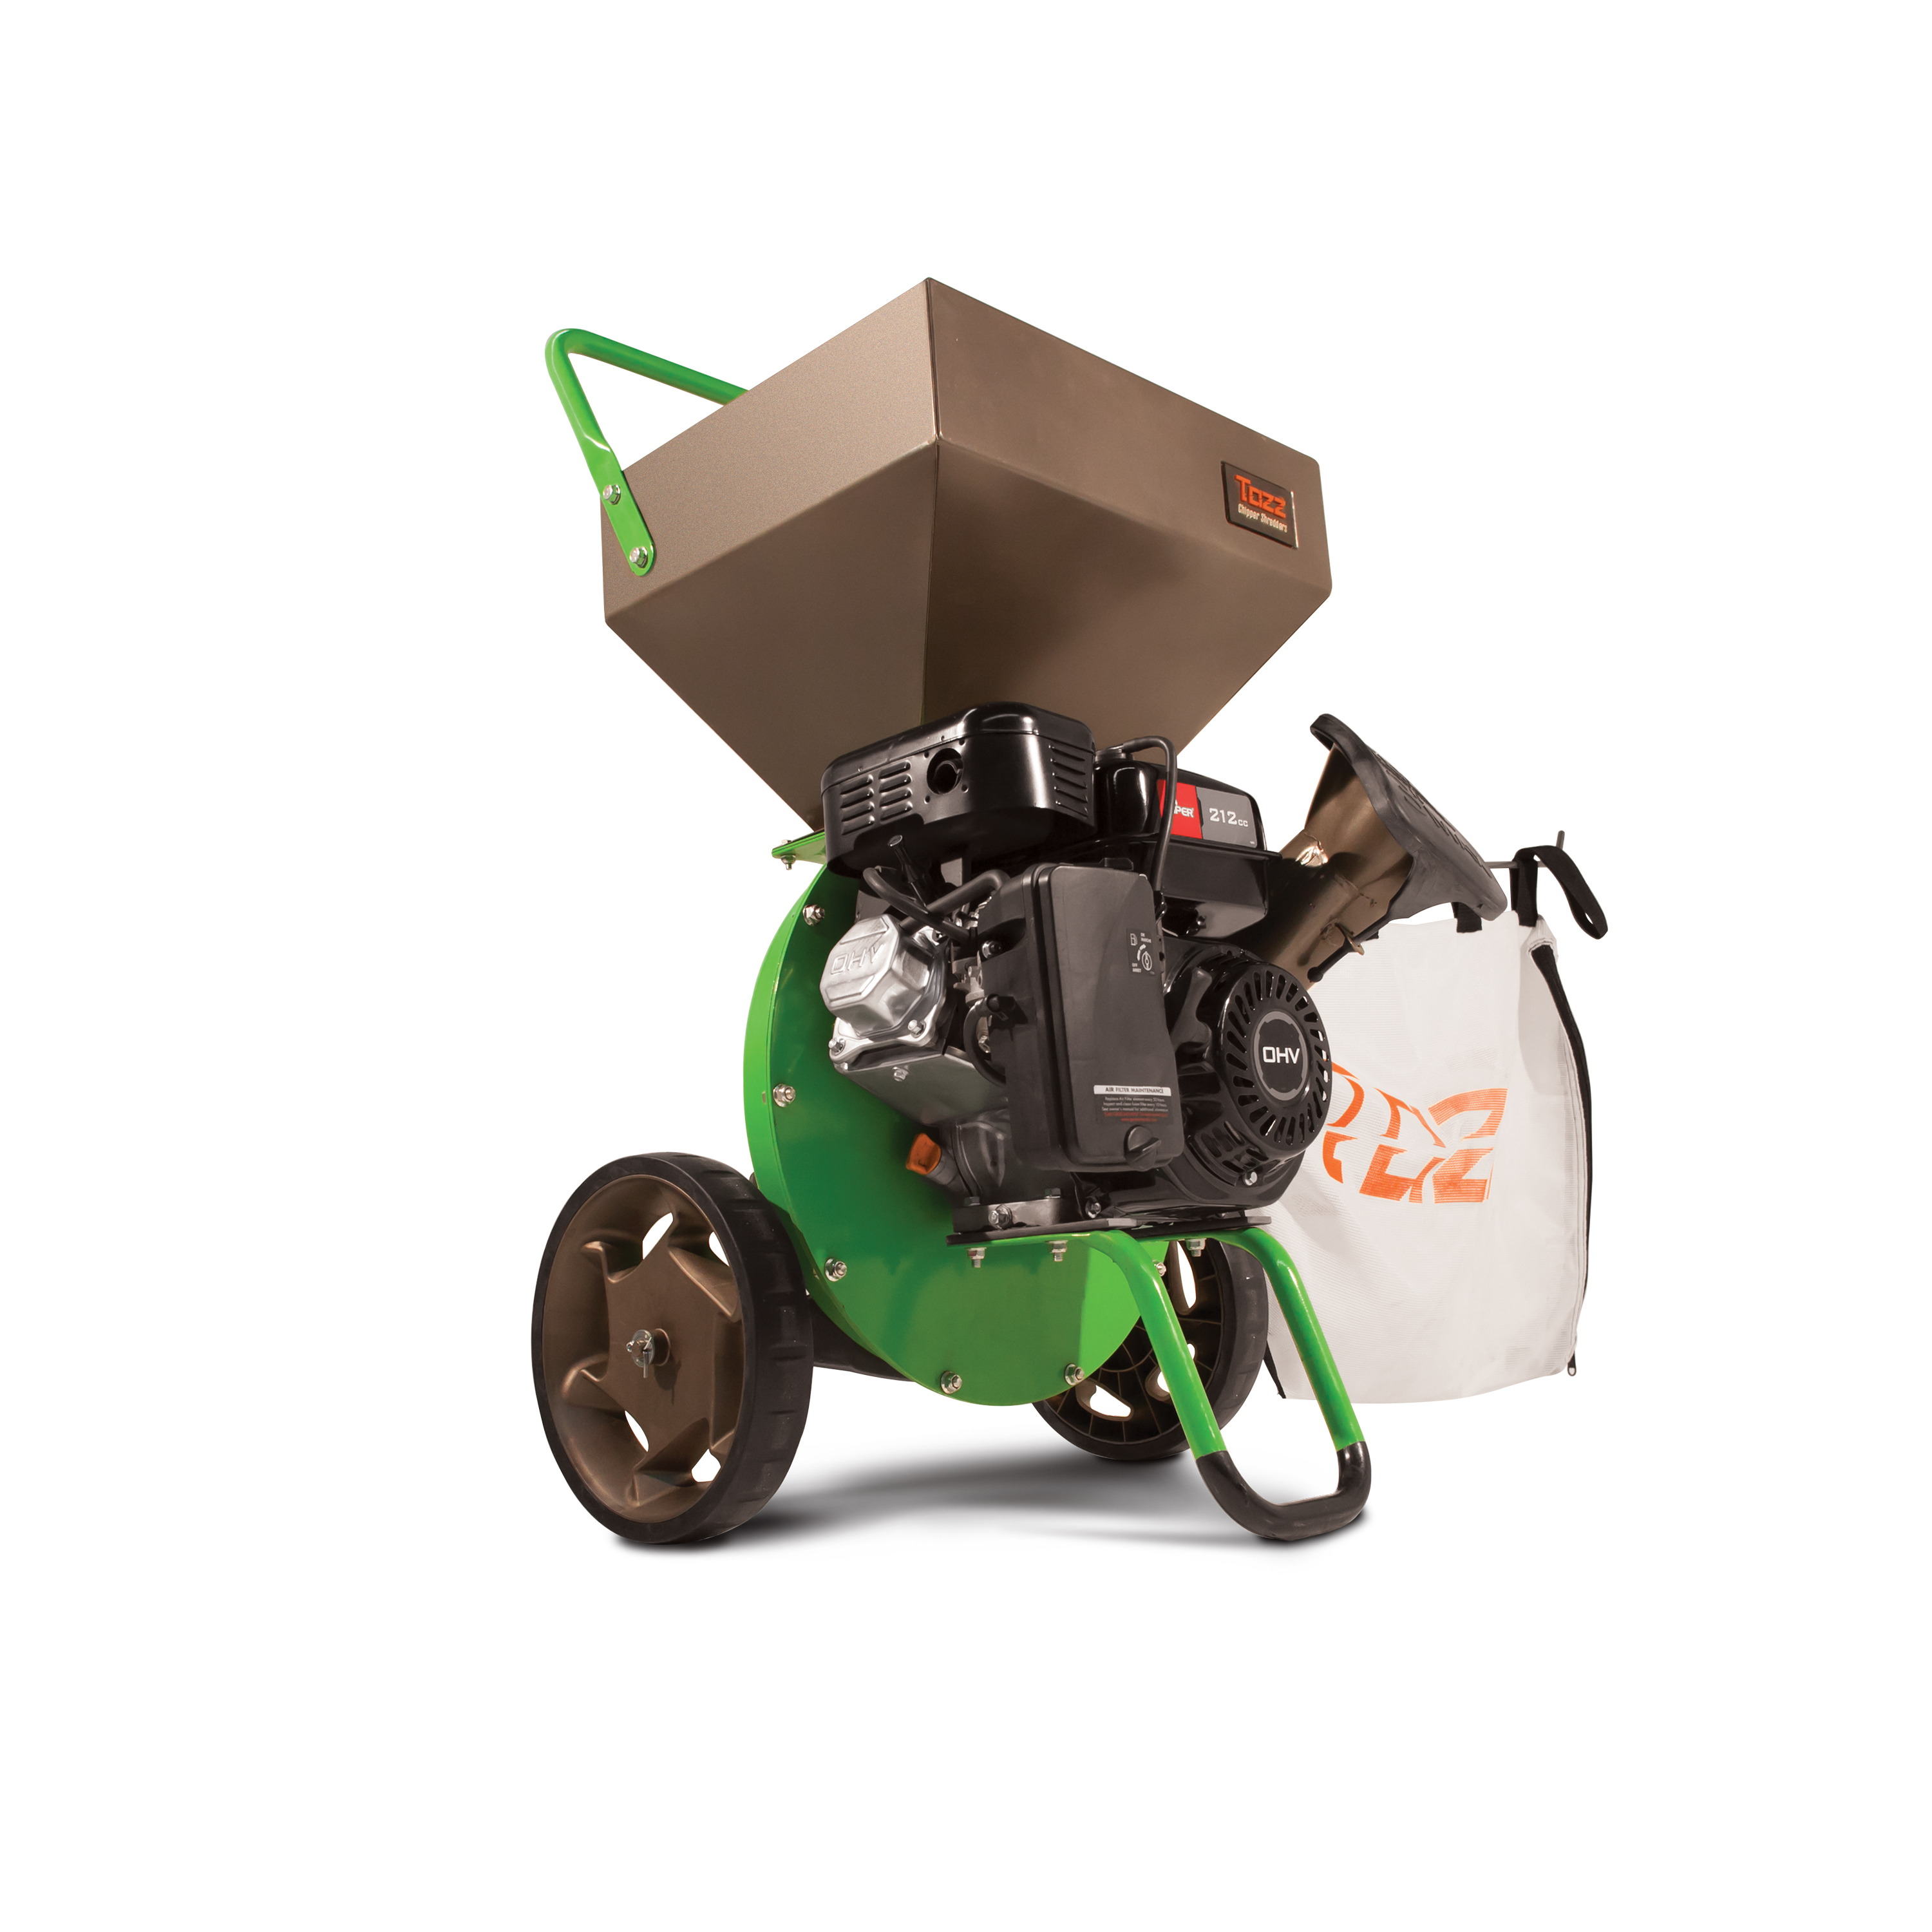 Tazz 30520 K32 Chipper Shredder - 212cc 4-Cycle Viper Engine, 5 Year Warranty